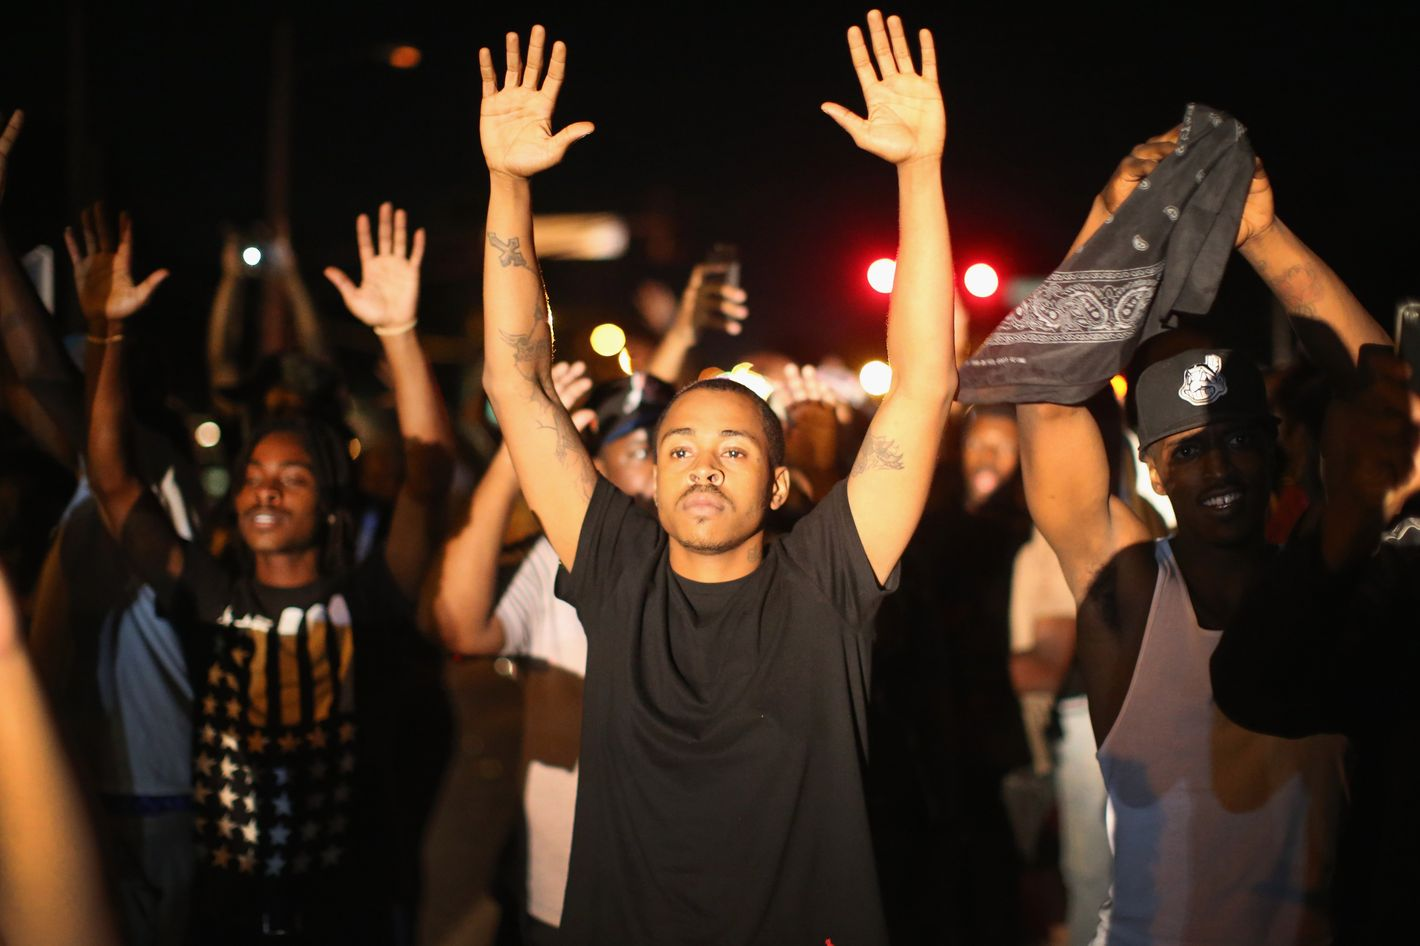 FERGUSON, MO - AUGUST 12:  Demonstrators protest the killing of teenager Michael Brown on August 12, 2014 in Ferguson, Missouri. Brown was shot and killed by a police officer on Saturday in the St. Louis suburb of Ferguson. Ferguson has experienced two days of violent protests since the killing but, tonight's protest was peaceful.  (Photo by Scott Olson/Getty Images)